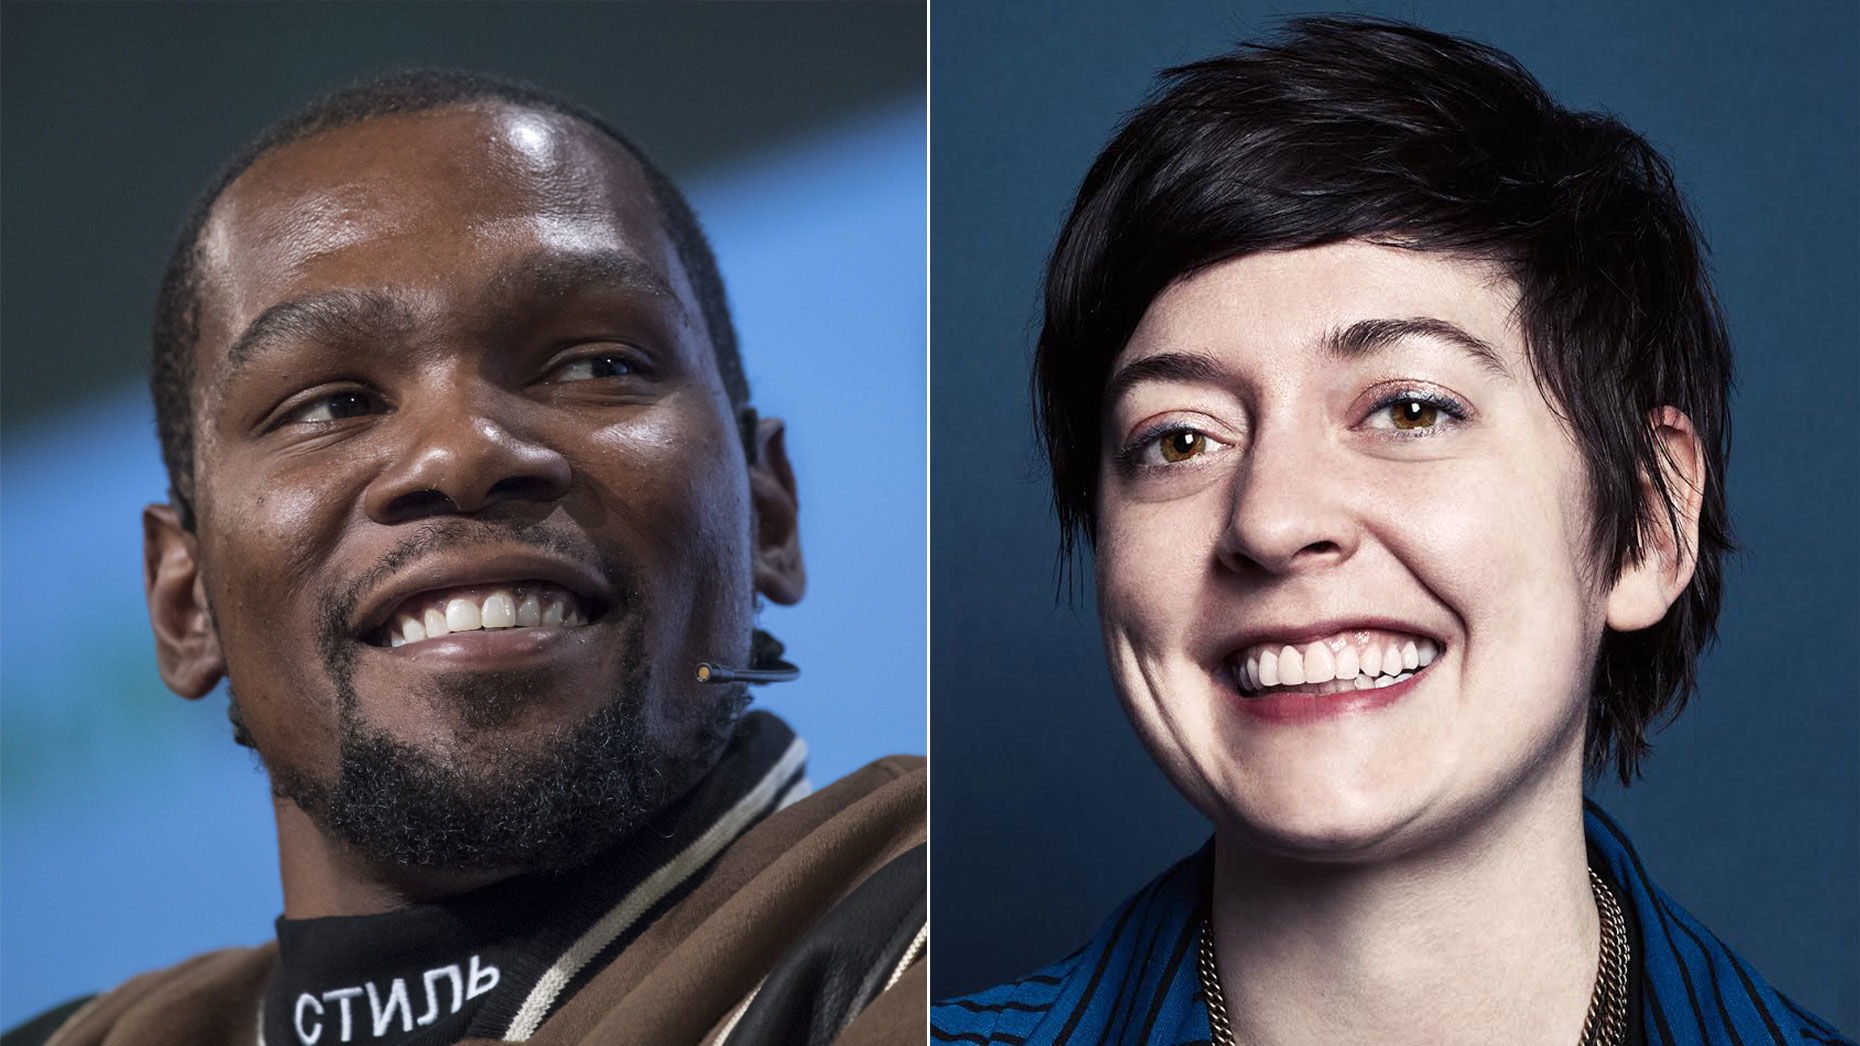 Kevin Durant, left, and Sarah Flynn. Photos by Bloomberg and courtesy of Thirty Five Ventures.